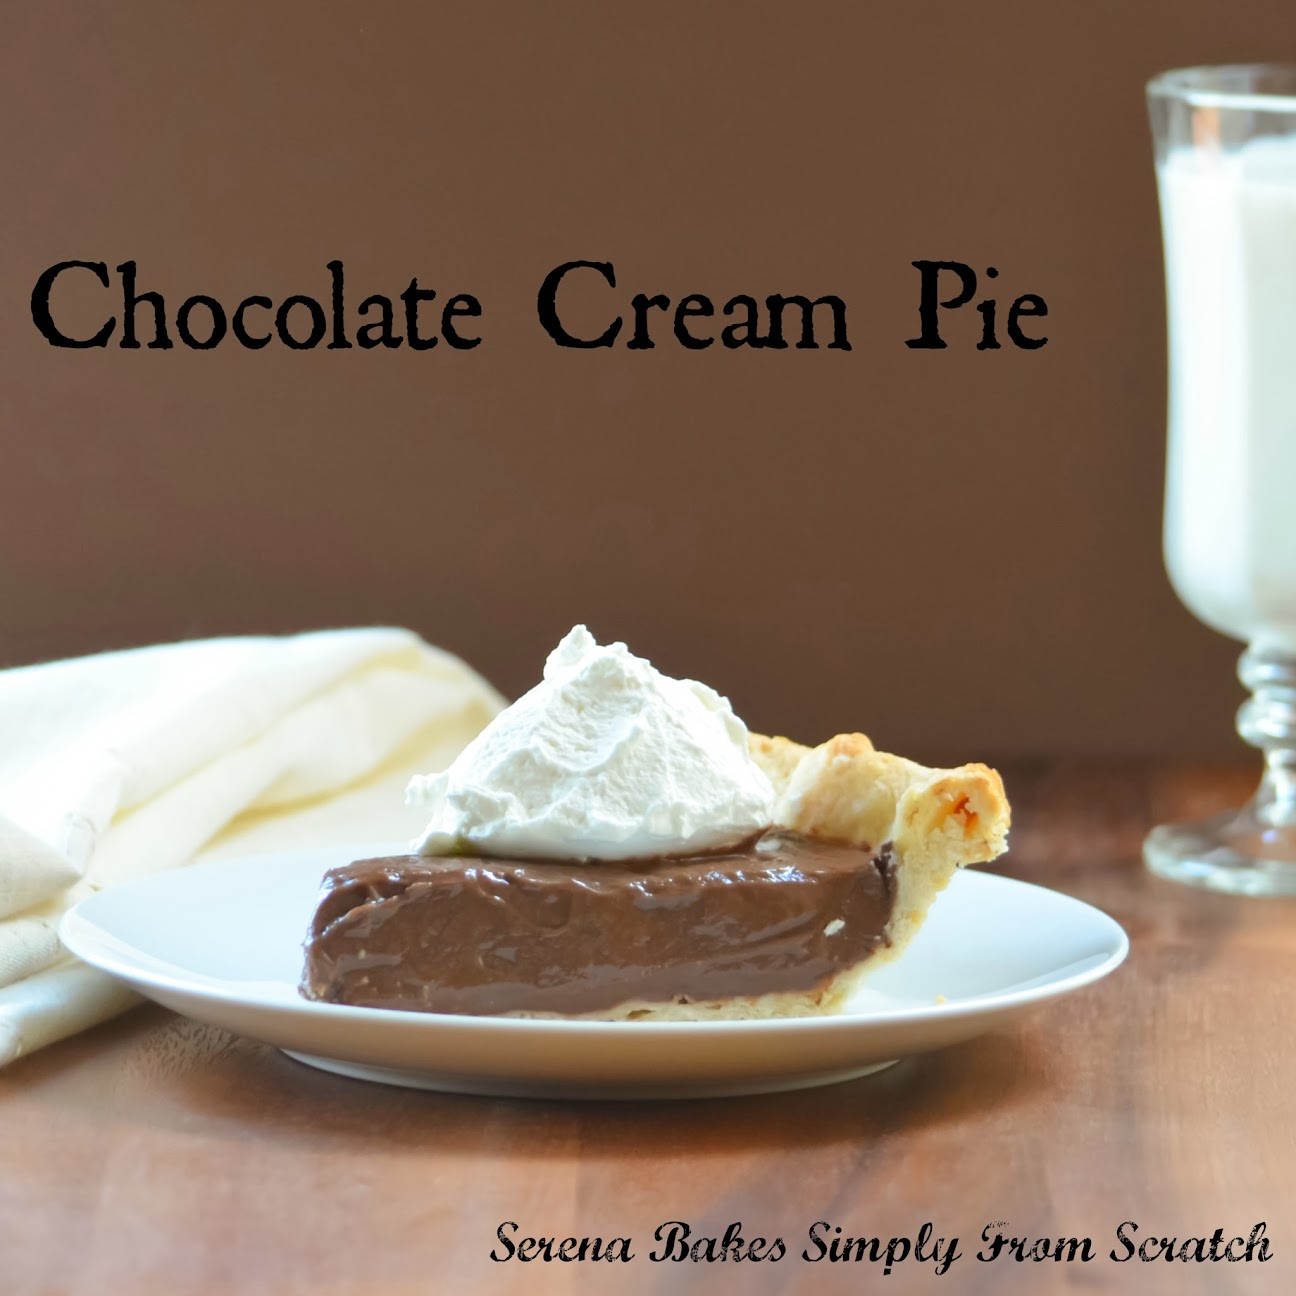 Chocolate-Cream-Pie.jpg